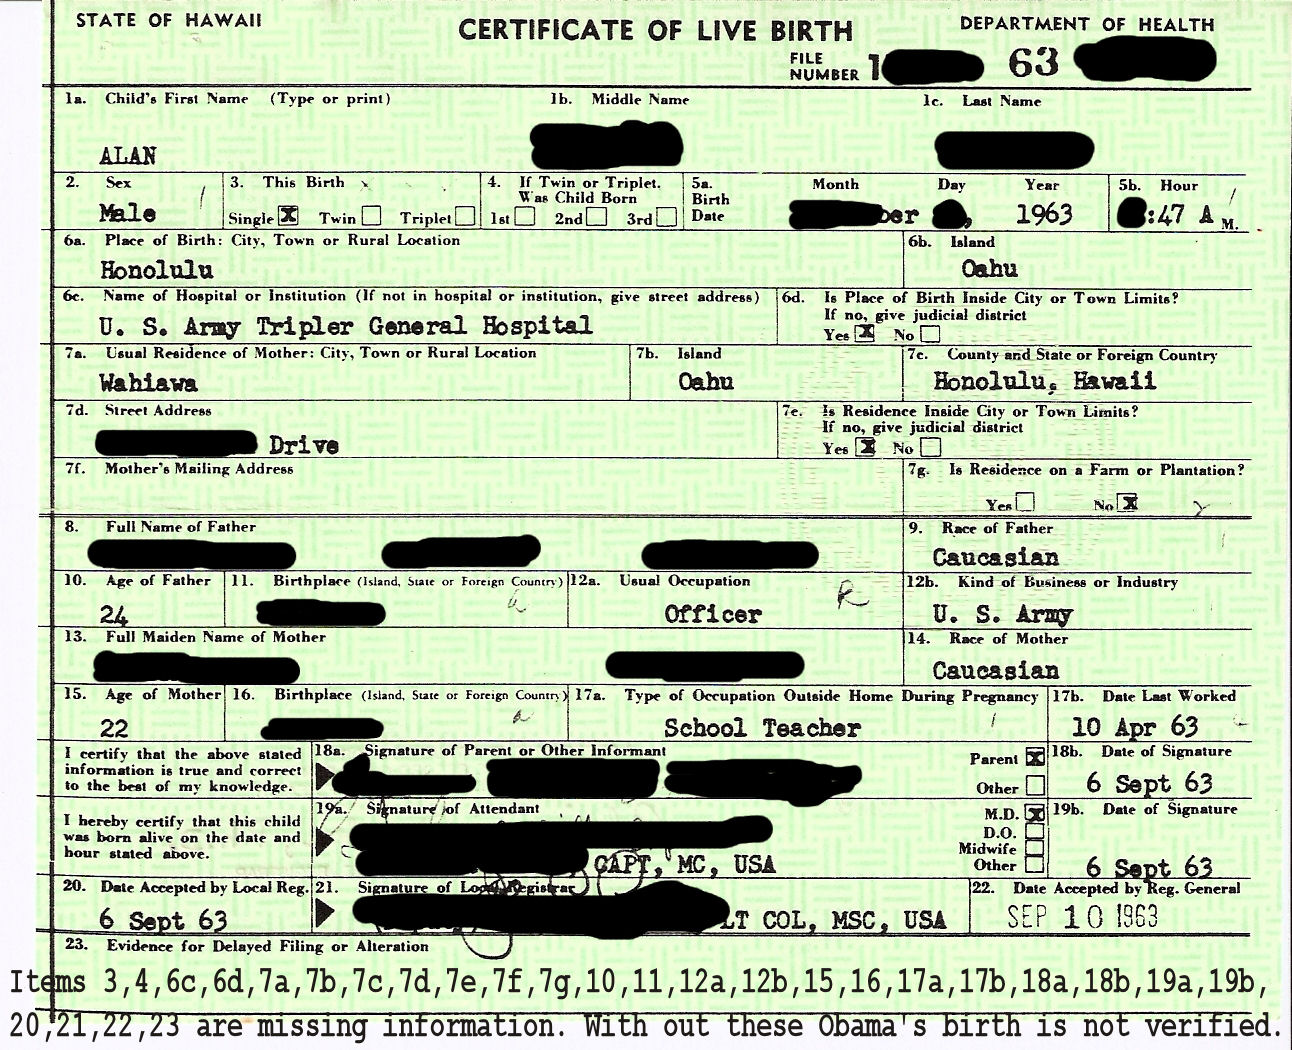 Hawaiian birth certificates native and natural born citizenship hawaiian birth certificate 1963 1betcityfo Image collections